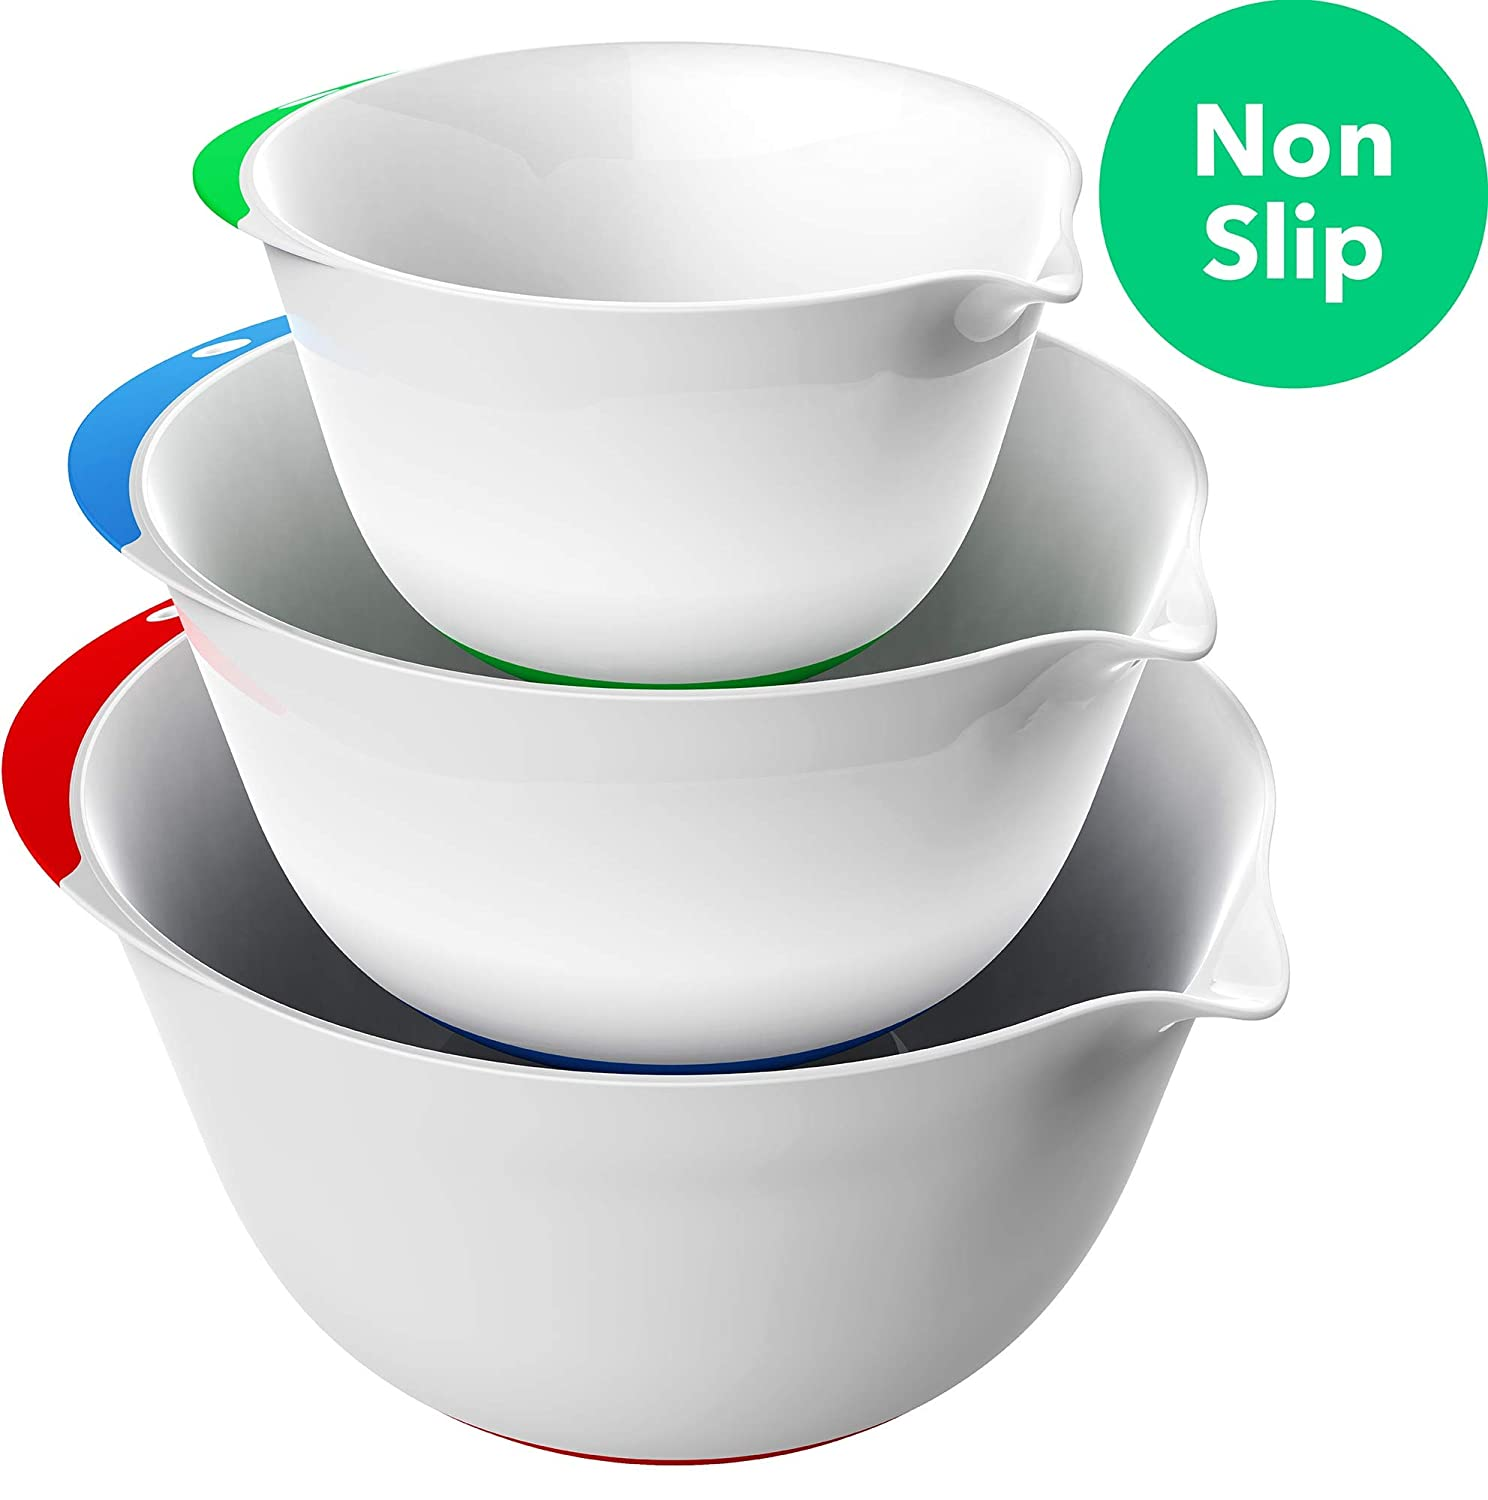 Vremi 3 Piece Plastic Mixing Bowl Set - Nesting Mixing Bowls with Rubber Grip Handles Easy Pour Spout and Non Slip Bottom - Three Sizes Small Large Capacity for Kitchen Baking or Salad - White Multi